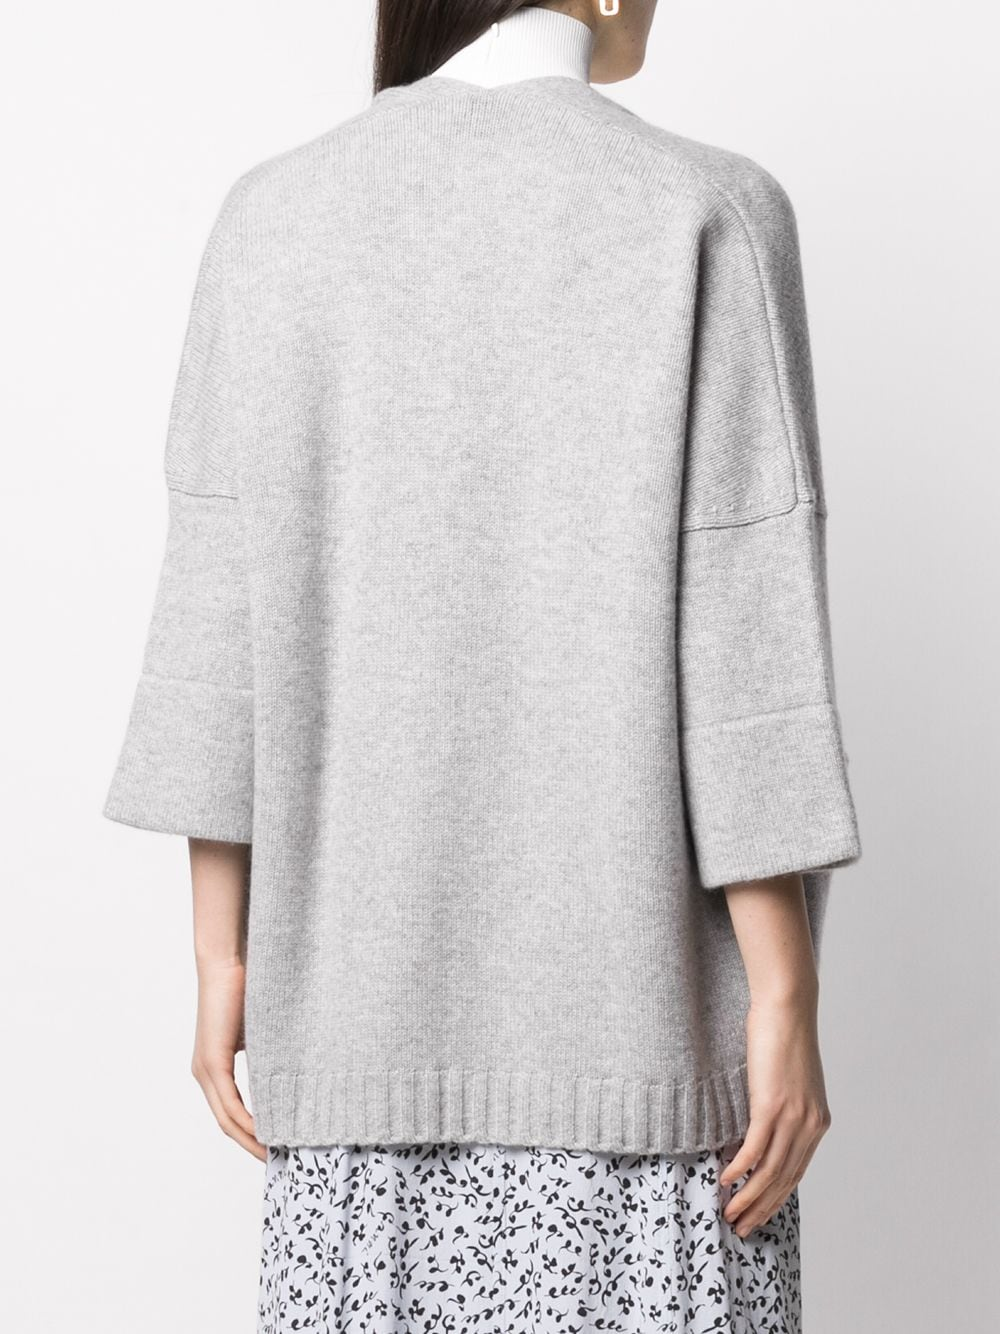 cloud grey wool-cashmere blend patch-pocket cardigan SNOBBY SHEEP |  | 20X.80910730